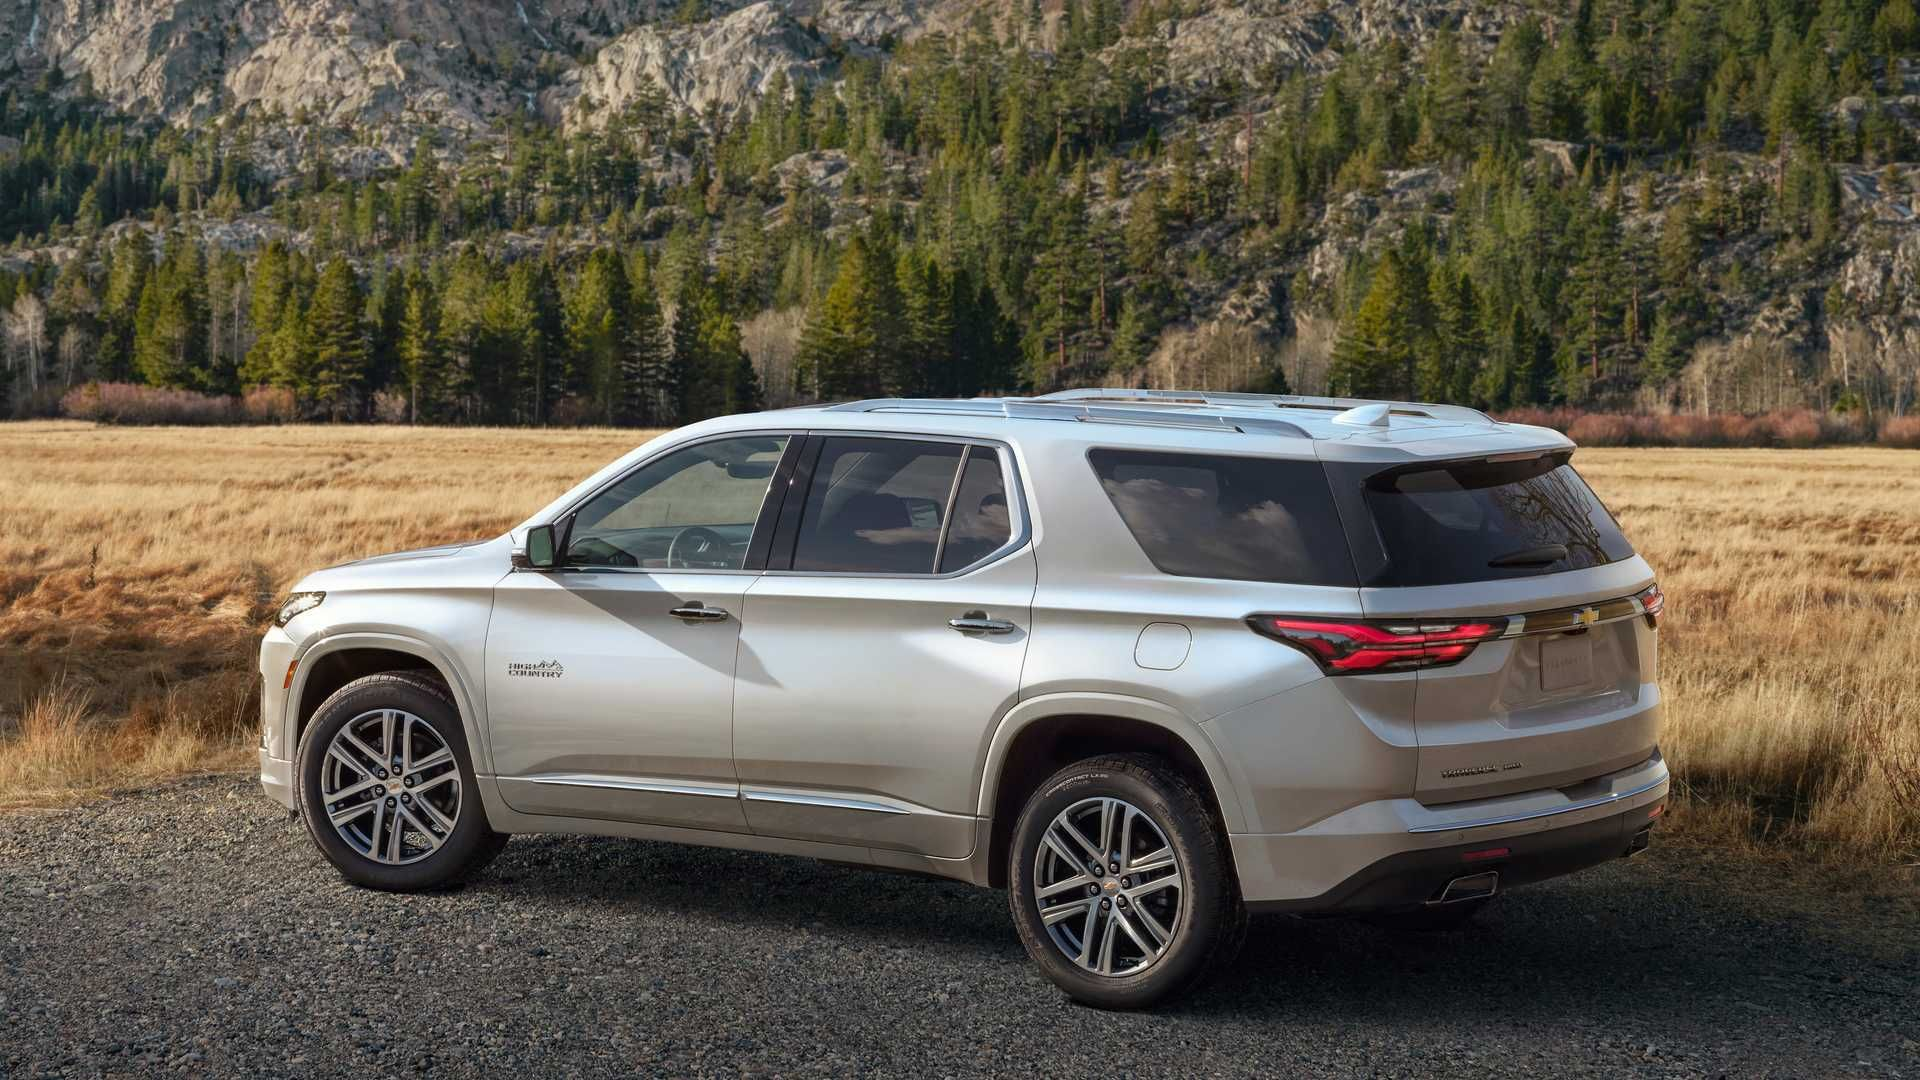 2021 Chevrolet Traverse Adds Safety Gear Style And Cabin Tweaks In 2020 Chevrolet Traverse Chevrolet Sport Utility Vehicle